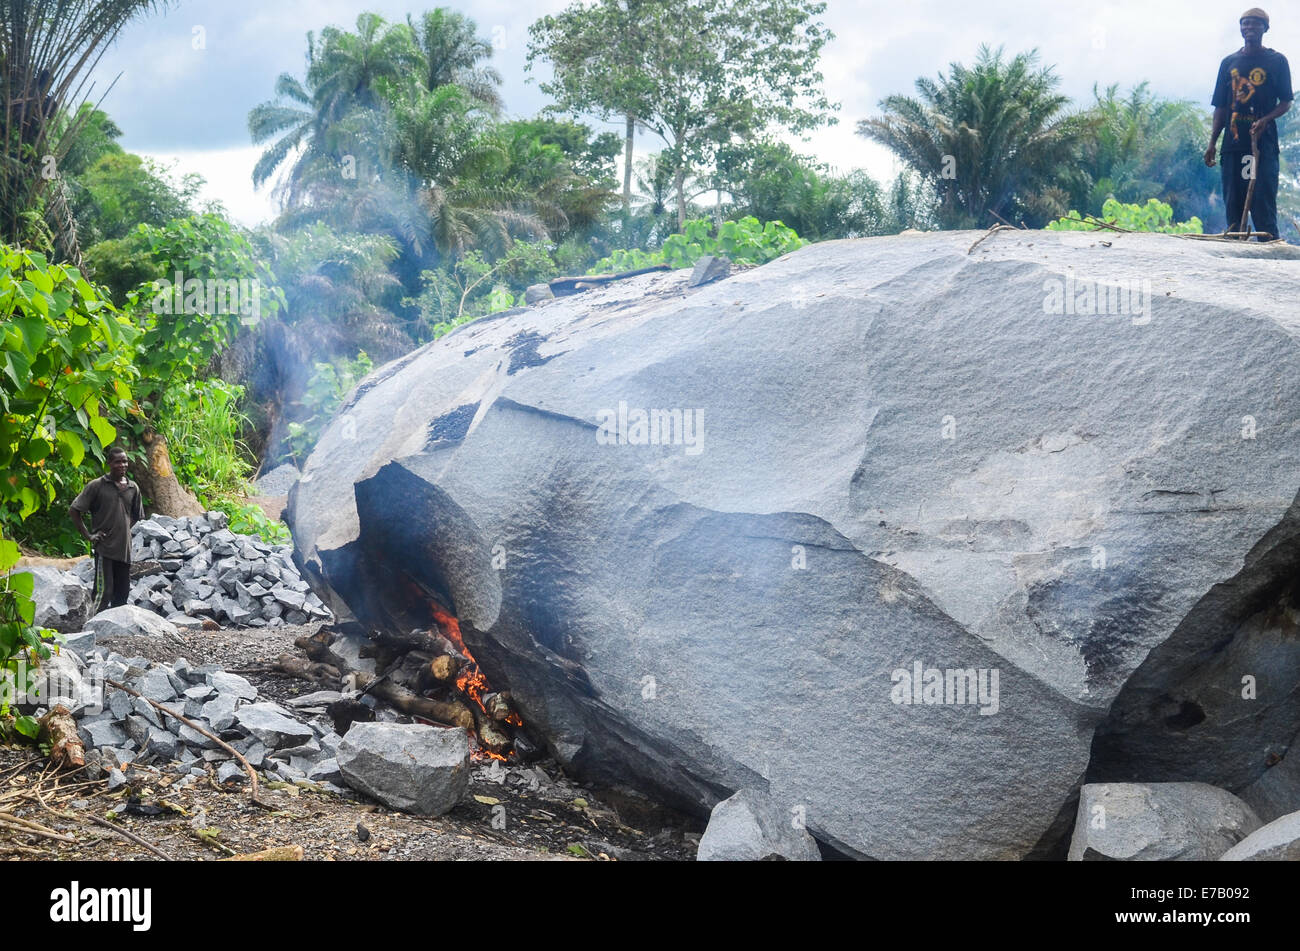 Stone-crushing people making a fire to break a stone down, Sierra Leone - Stock Image